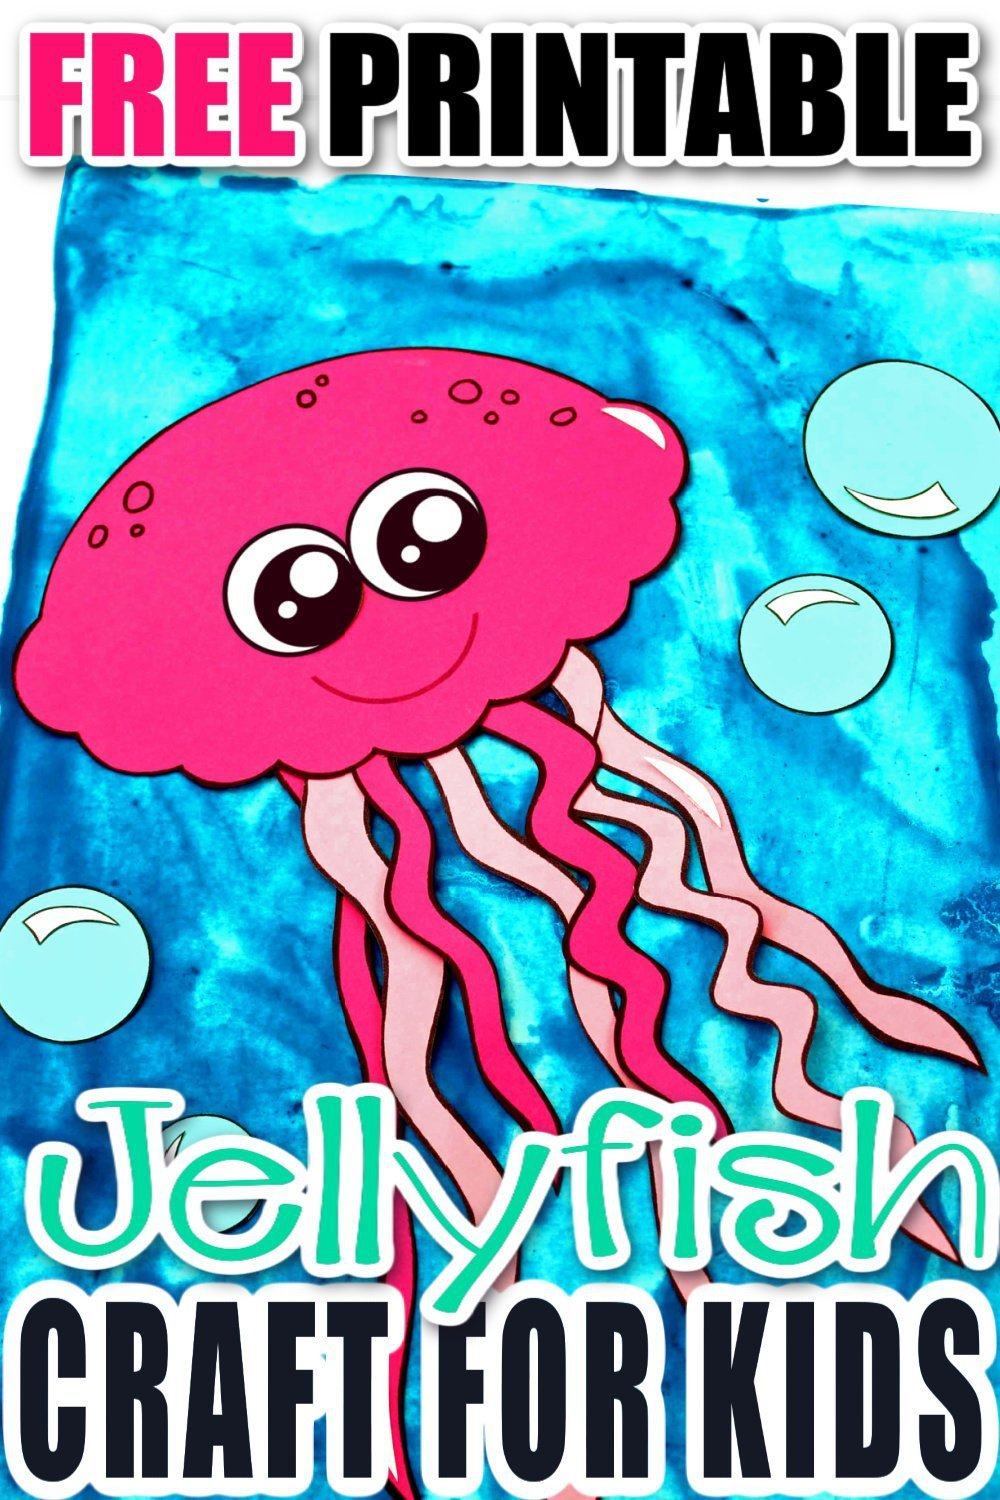 Teaching the letter J or exploring ocean animals with your preschooler or toddlers kids? Use the free printable template and make your own jellyfish craft friend. He is the perfect, easy under the sea art project to do this summer! #jellyfishcrafts #jellyfish #oceananimals #oceananimalcrafts #SimpleMomProject